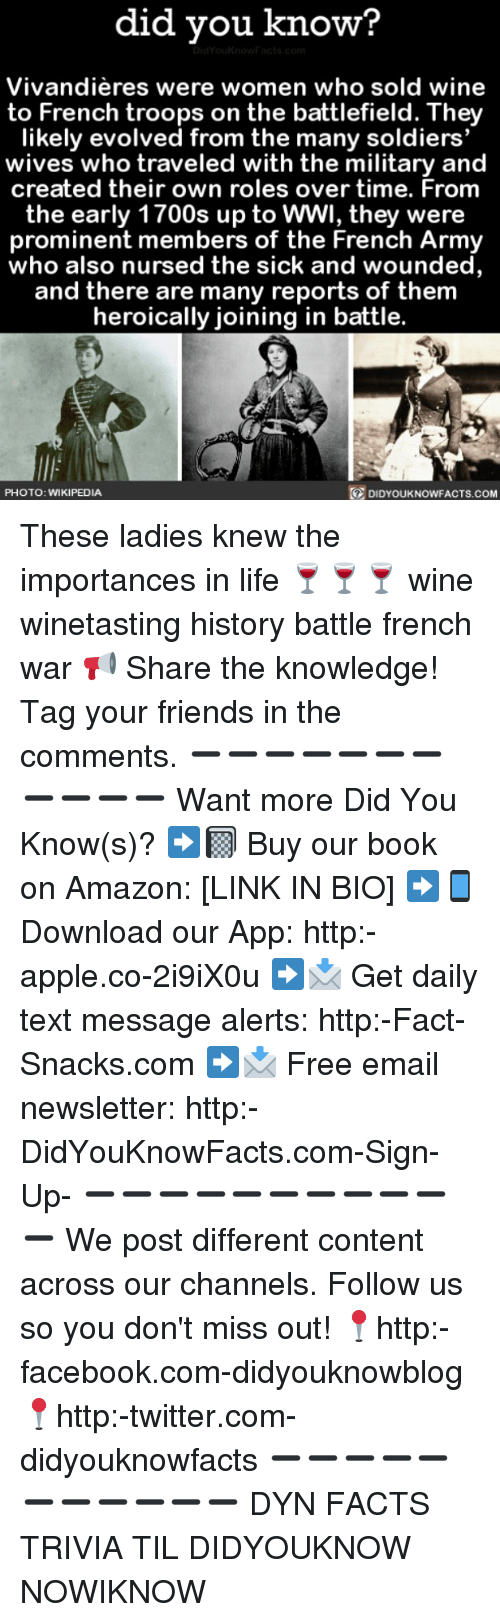 Amazon, Apple, and Facebook: did you know?  Vivandieres were women who sold wine  to French troops on the battlefield. They  likely evolved from the many soldiers  wives who traveled with the military and  created their own roles over time. From  the early 1700s up to WWI, they were  prominent members of the French Army  who also nursed the sick and wounded  and there are many reports of them  heroically joining in battle.  PHOTO: WIKIPEDIA  DIDYOUKNOWFACTS.coM These ladies knew the importances in life 🍷🍷🍷 wine winetasting history battle french war 📢 Share the knowledge! Tag your friends in the comments. ➖➖➖➖➖➖➖➖➖➖➖ Want more Did You Know(s)? ➡📓 Buy our book on Amazon: [LINK IN BIO] ➡📱 Download our App: http:-apple.co-2i9iX0u ➡📩 Get daily text message alerts: http:-Fact-Snacks.com ➡📩 Free email newsletter: http:-DidYouKnowFacts.com-Sign-Up- ➖➖➖➖➖➖➖➖➖➖➖ We post different content across our channels. Follow us so you don't miss out! 📍http:-facebook.com-didyouknowblog 📍http:-twitter.com-didyouknowfacts ➖➖➖➖➖➖➖➖➖➖➖ DYN FACTS TRIVIA TIL DIDYOUKNOW NOWIKNOW